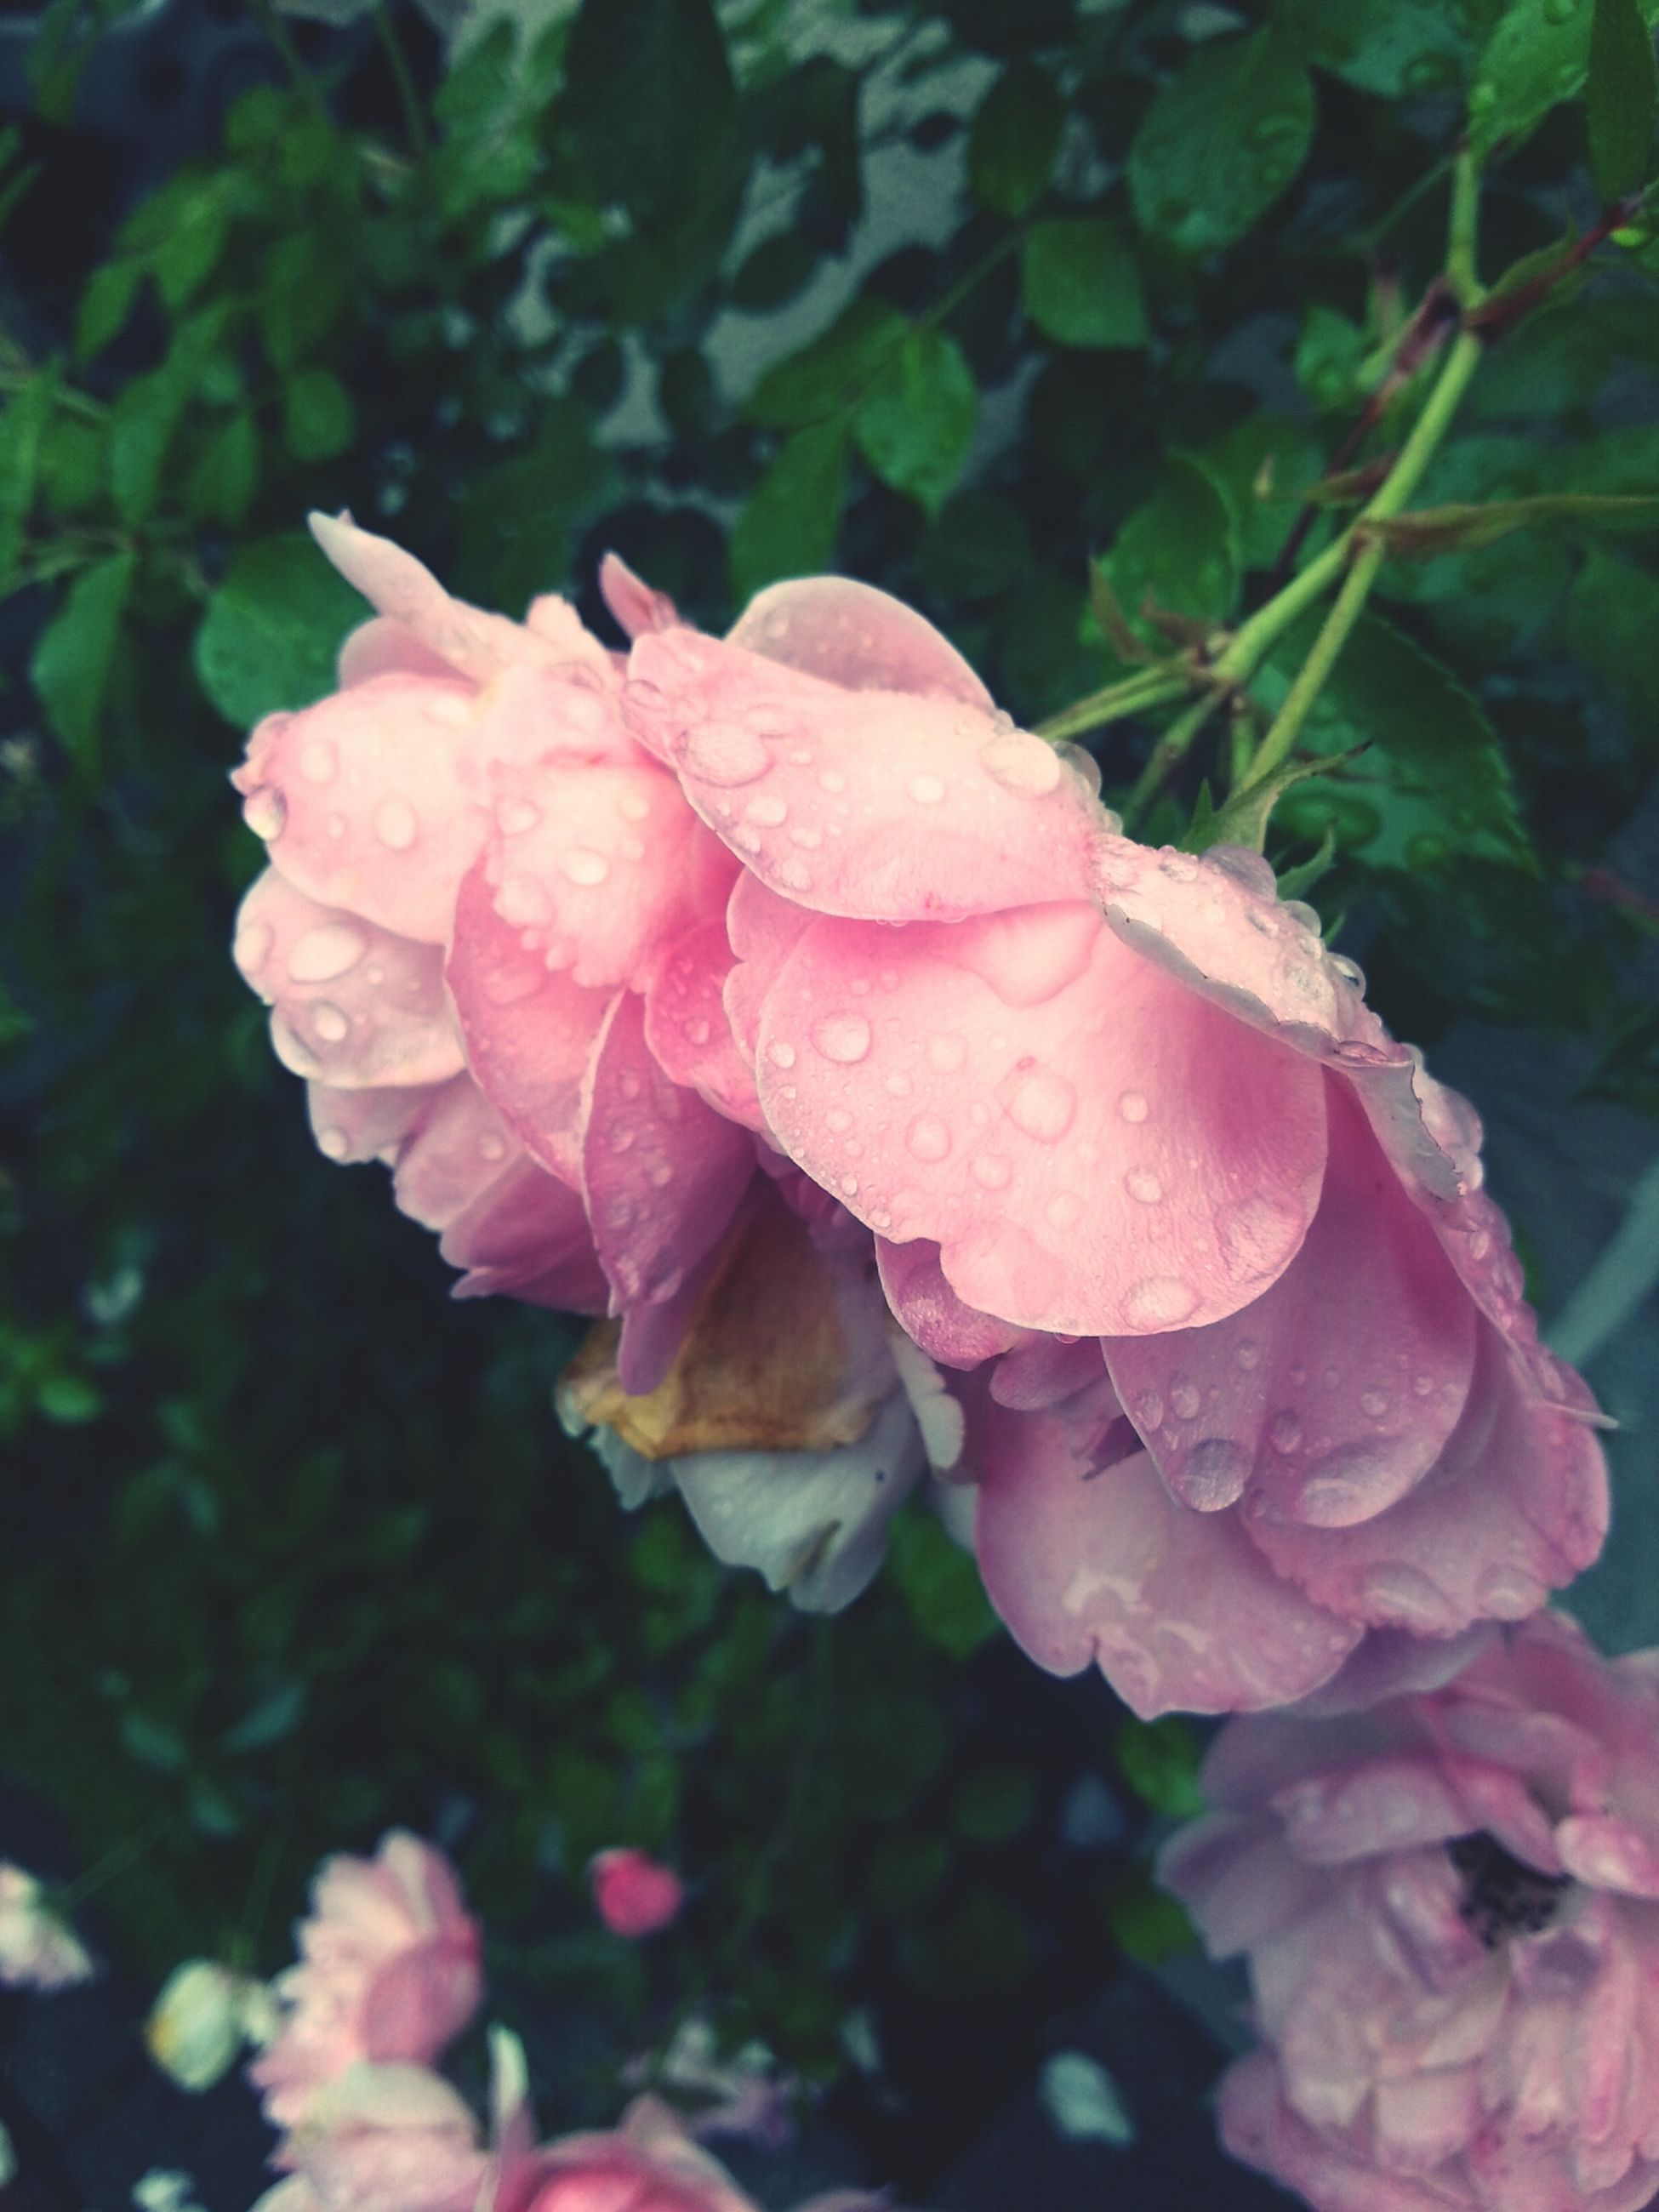 flower, freshness, petal, fragility, growth, pink color, flower head, beauty in nature, close-up, nature, blooming, focus on foreground, drop, plant, water, wet, single flower, in bloom, pink, outdoors